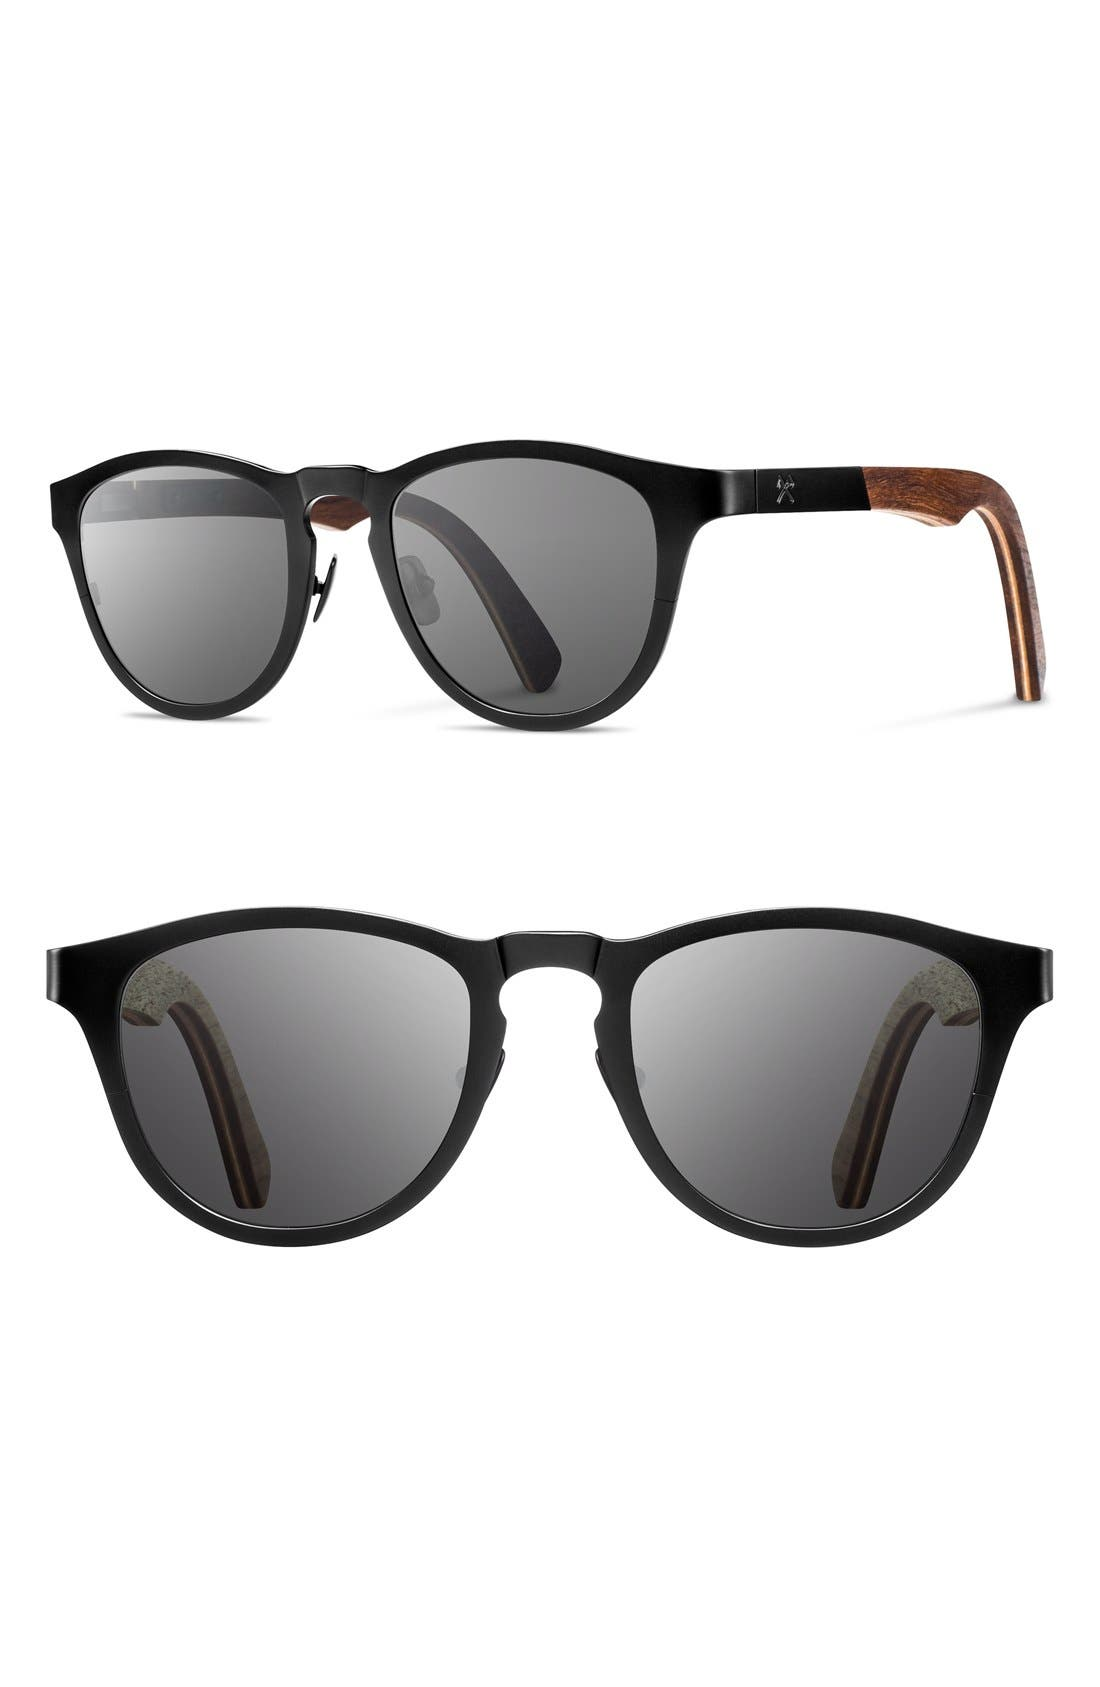 'Francis' 49mm Titanium & Wood Sunglasses,                             Main thumbnail 1, color,                             Black/ Walnut